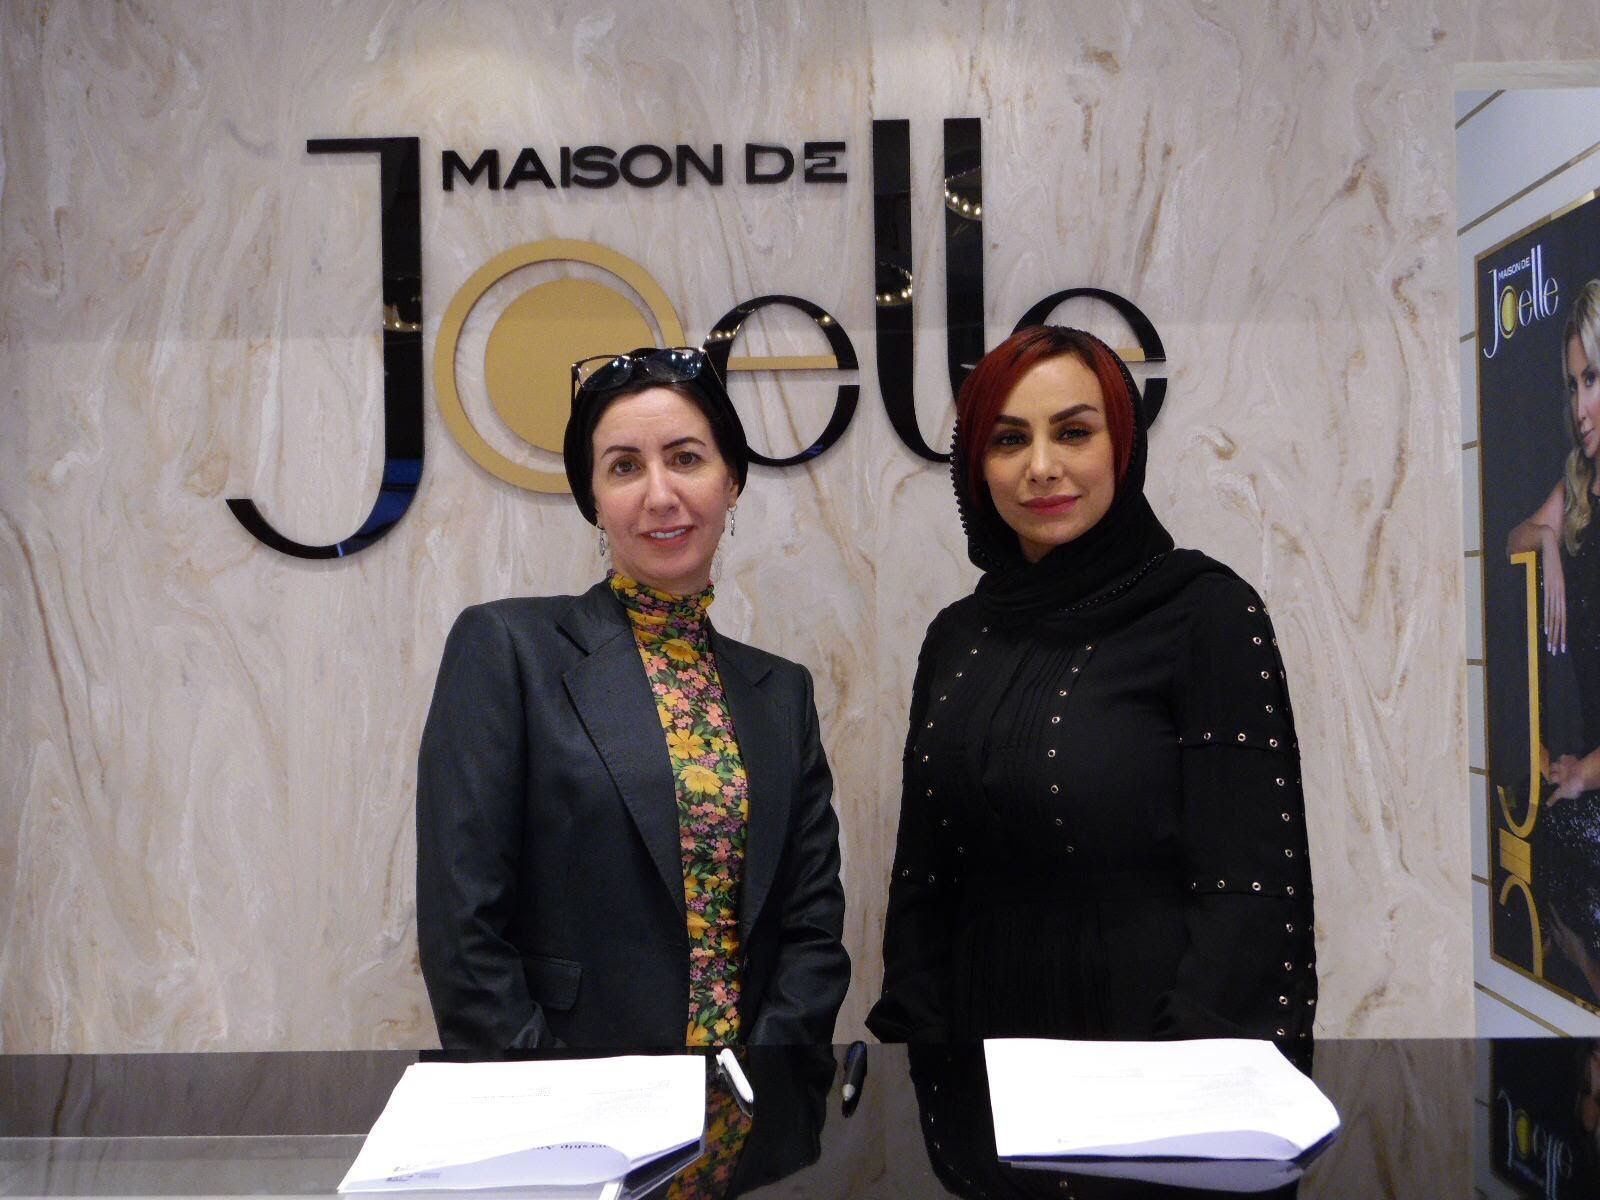 Bahrain Fashion Incubator signs a partnership agreement with Maison De Joelle Bahrain